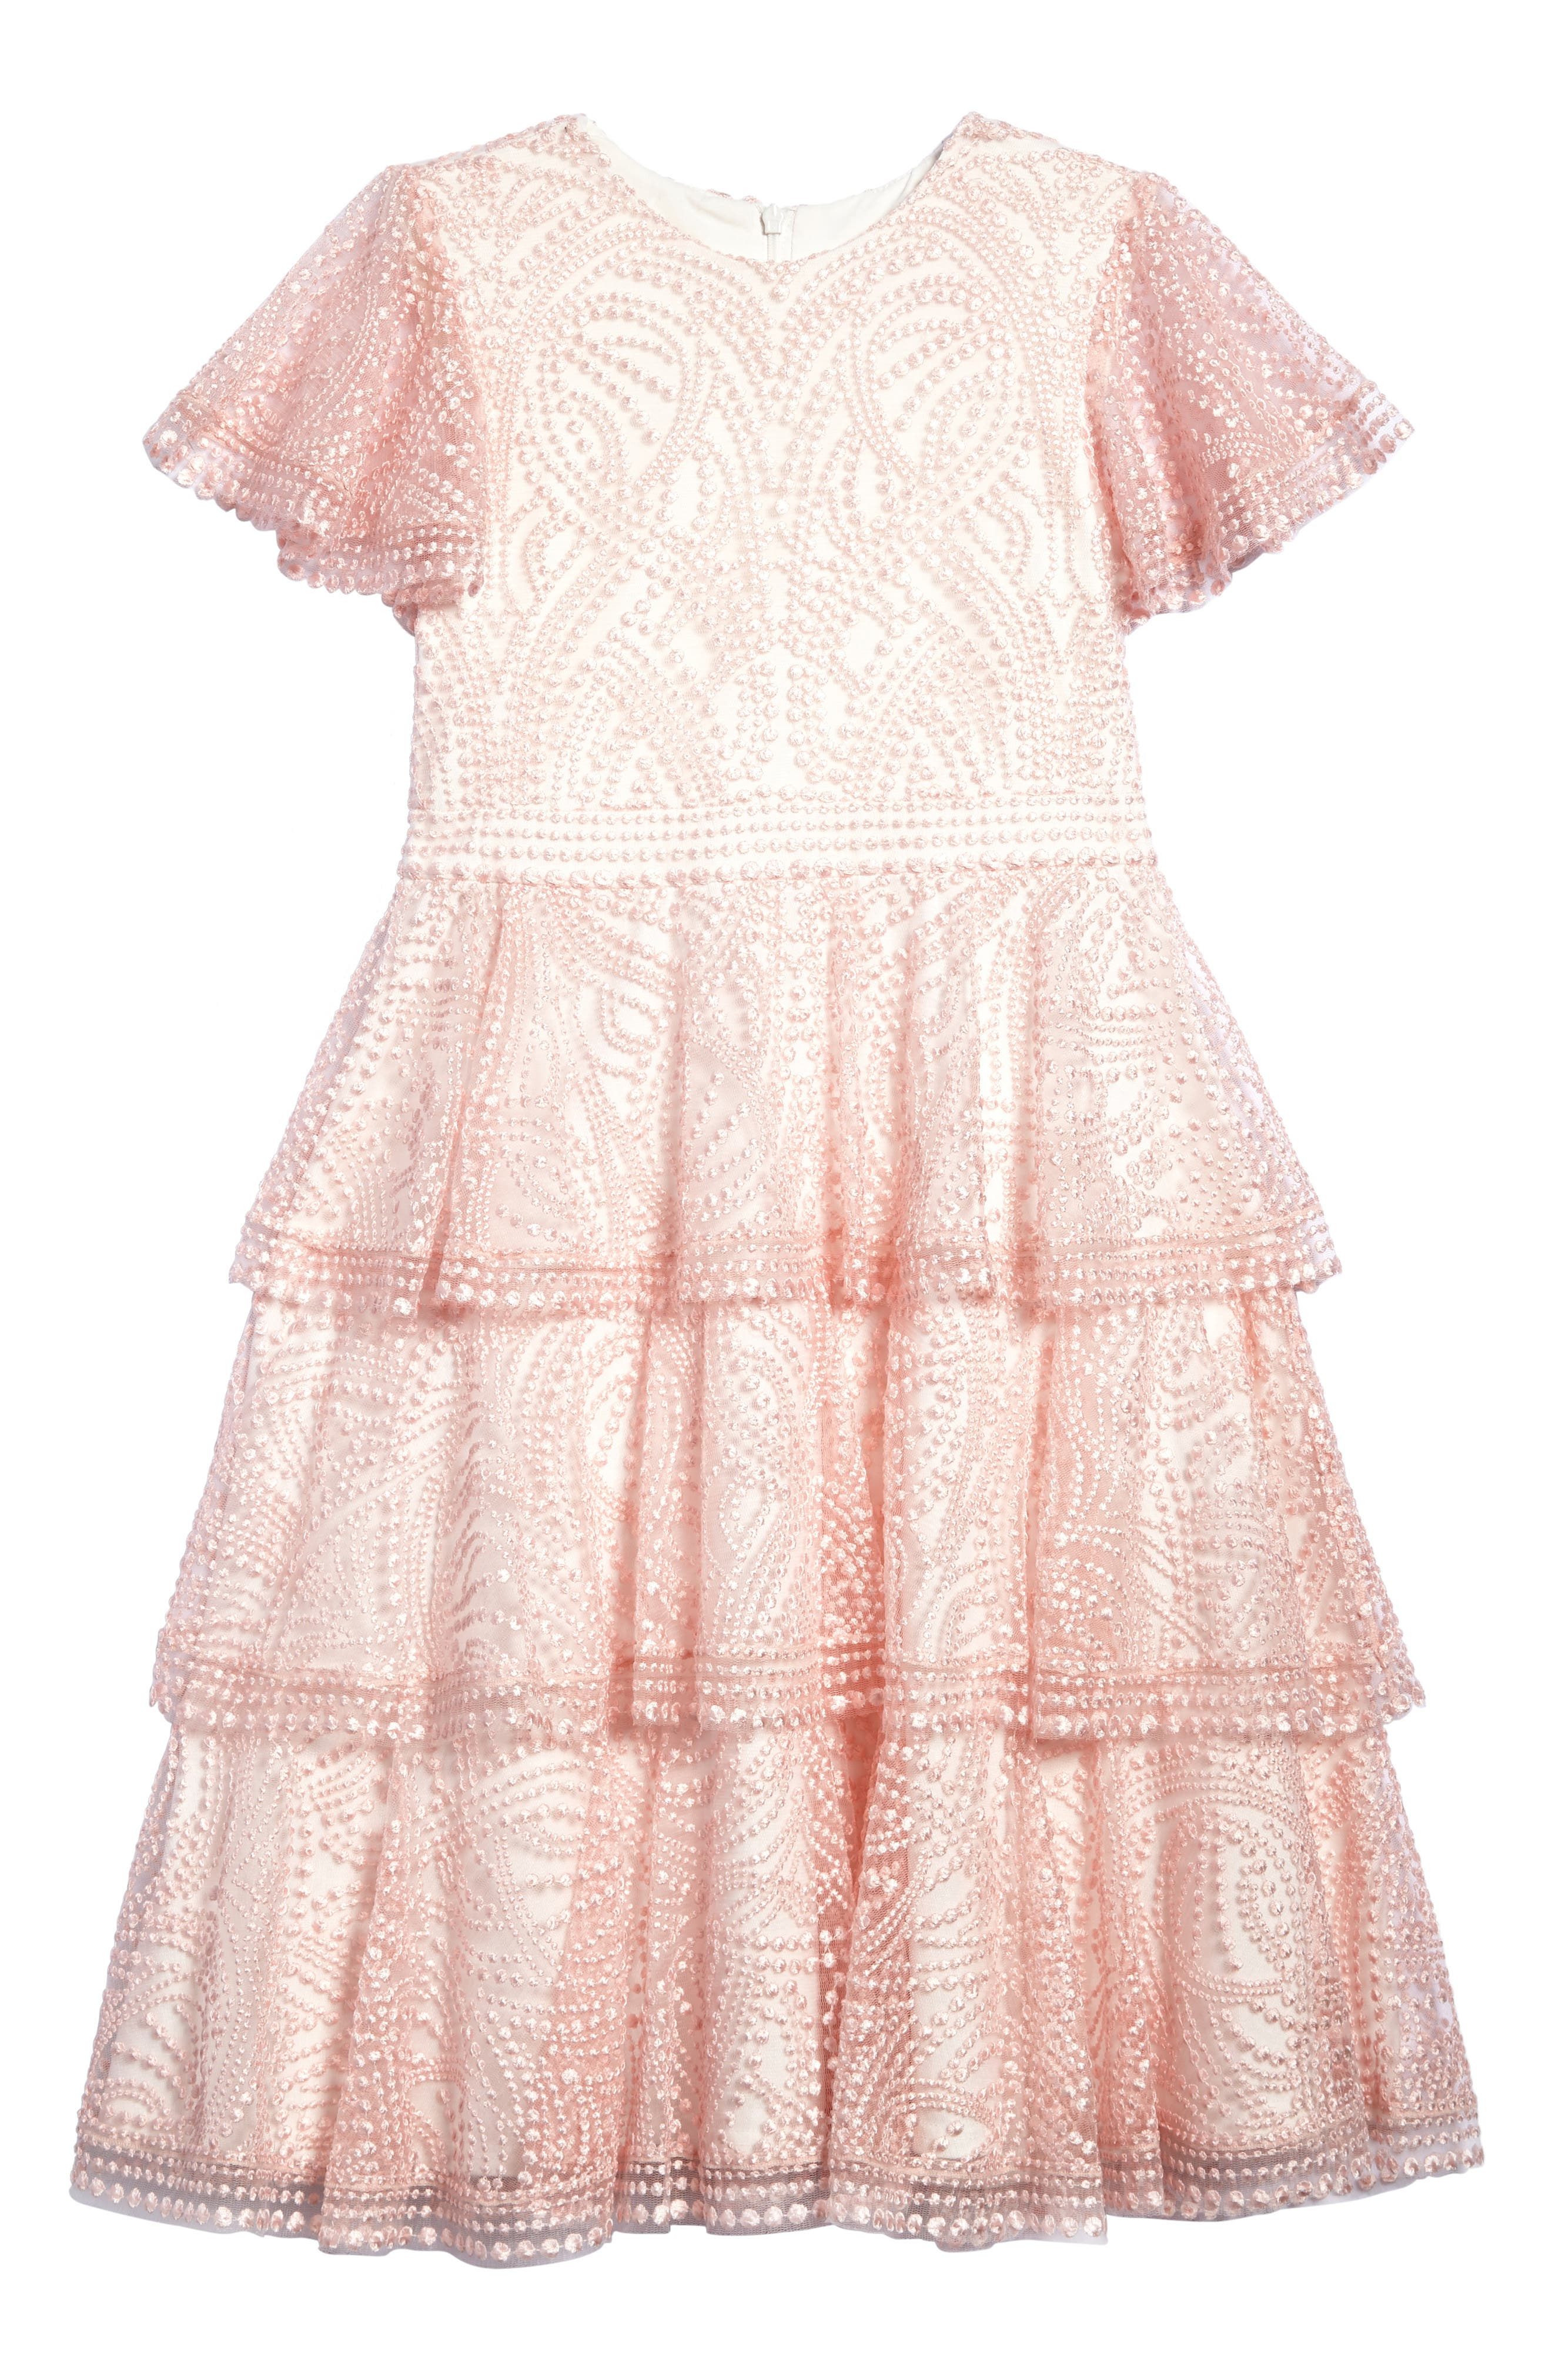 Embroidered Ruffle Dress,                             Main thumbnail 1, color,                             683